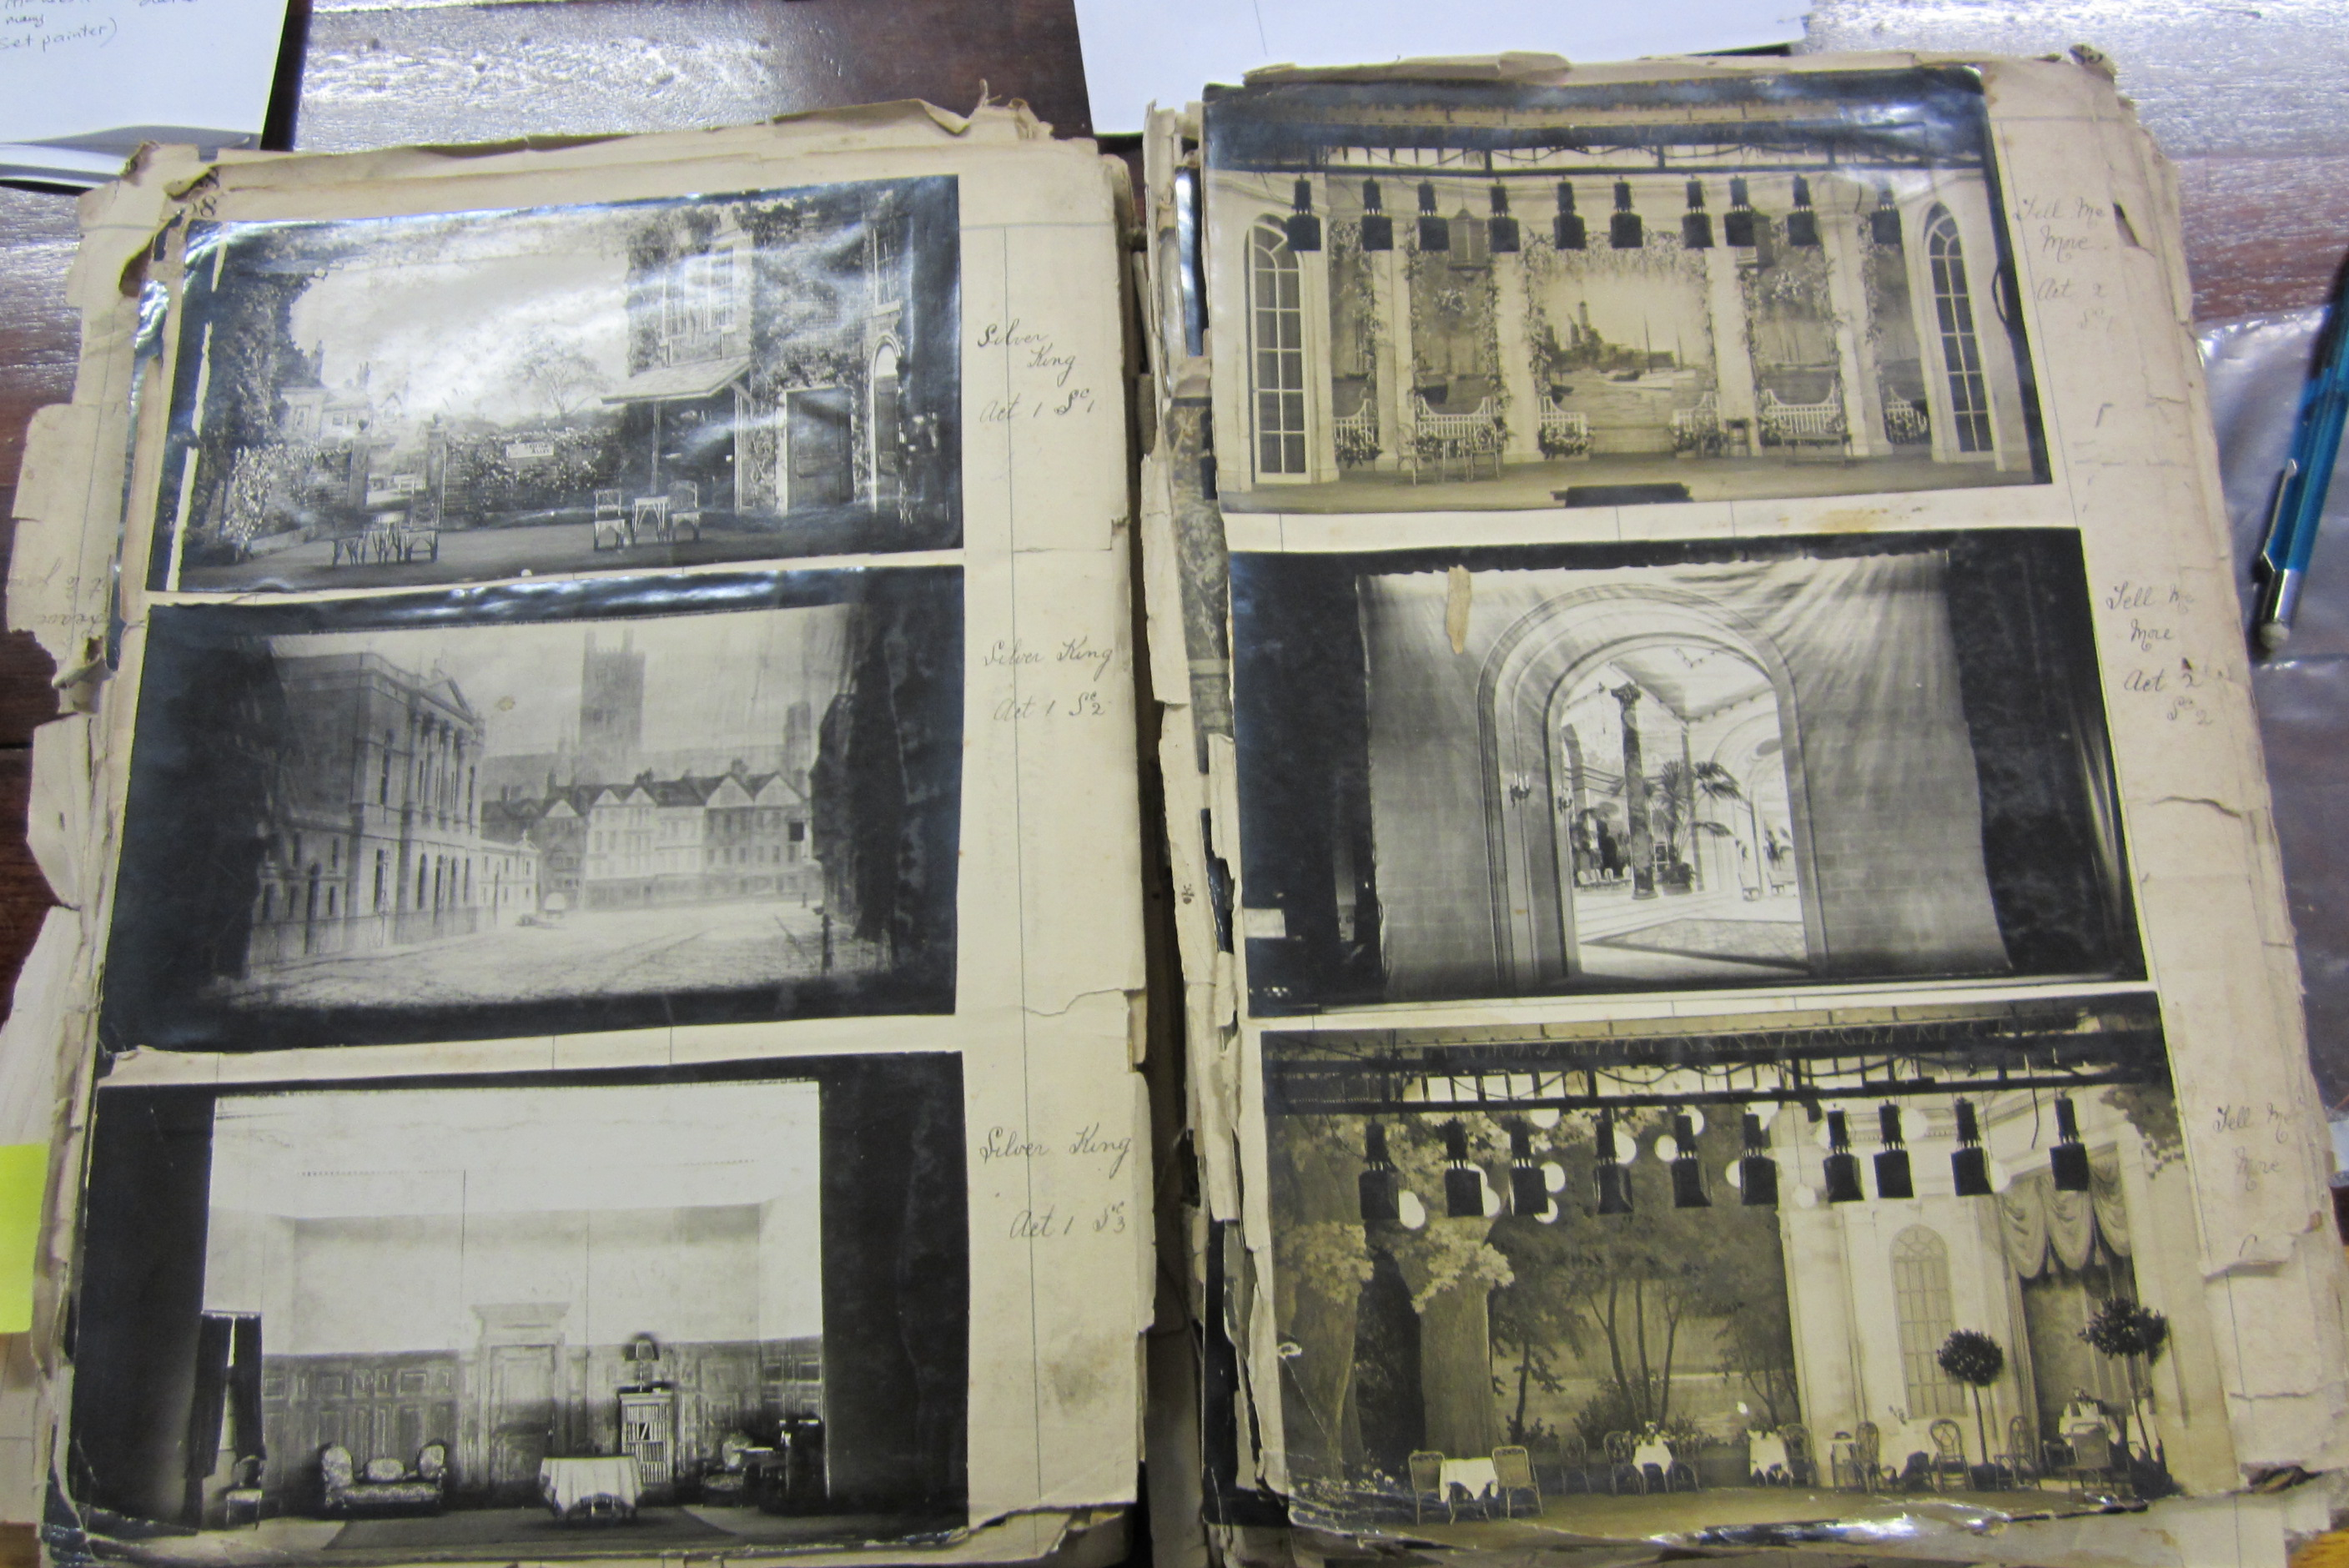 Inside one of the books showing photographs